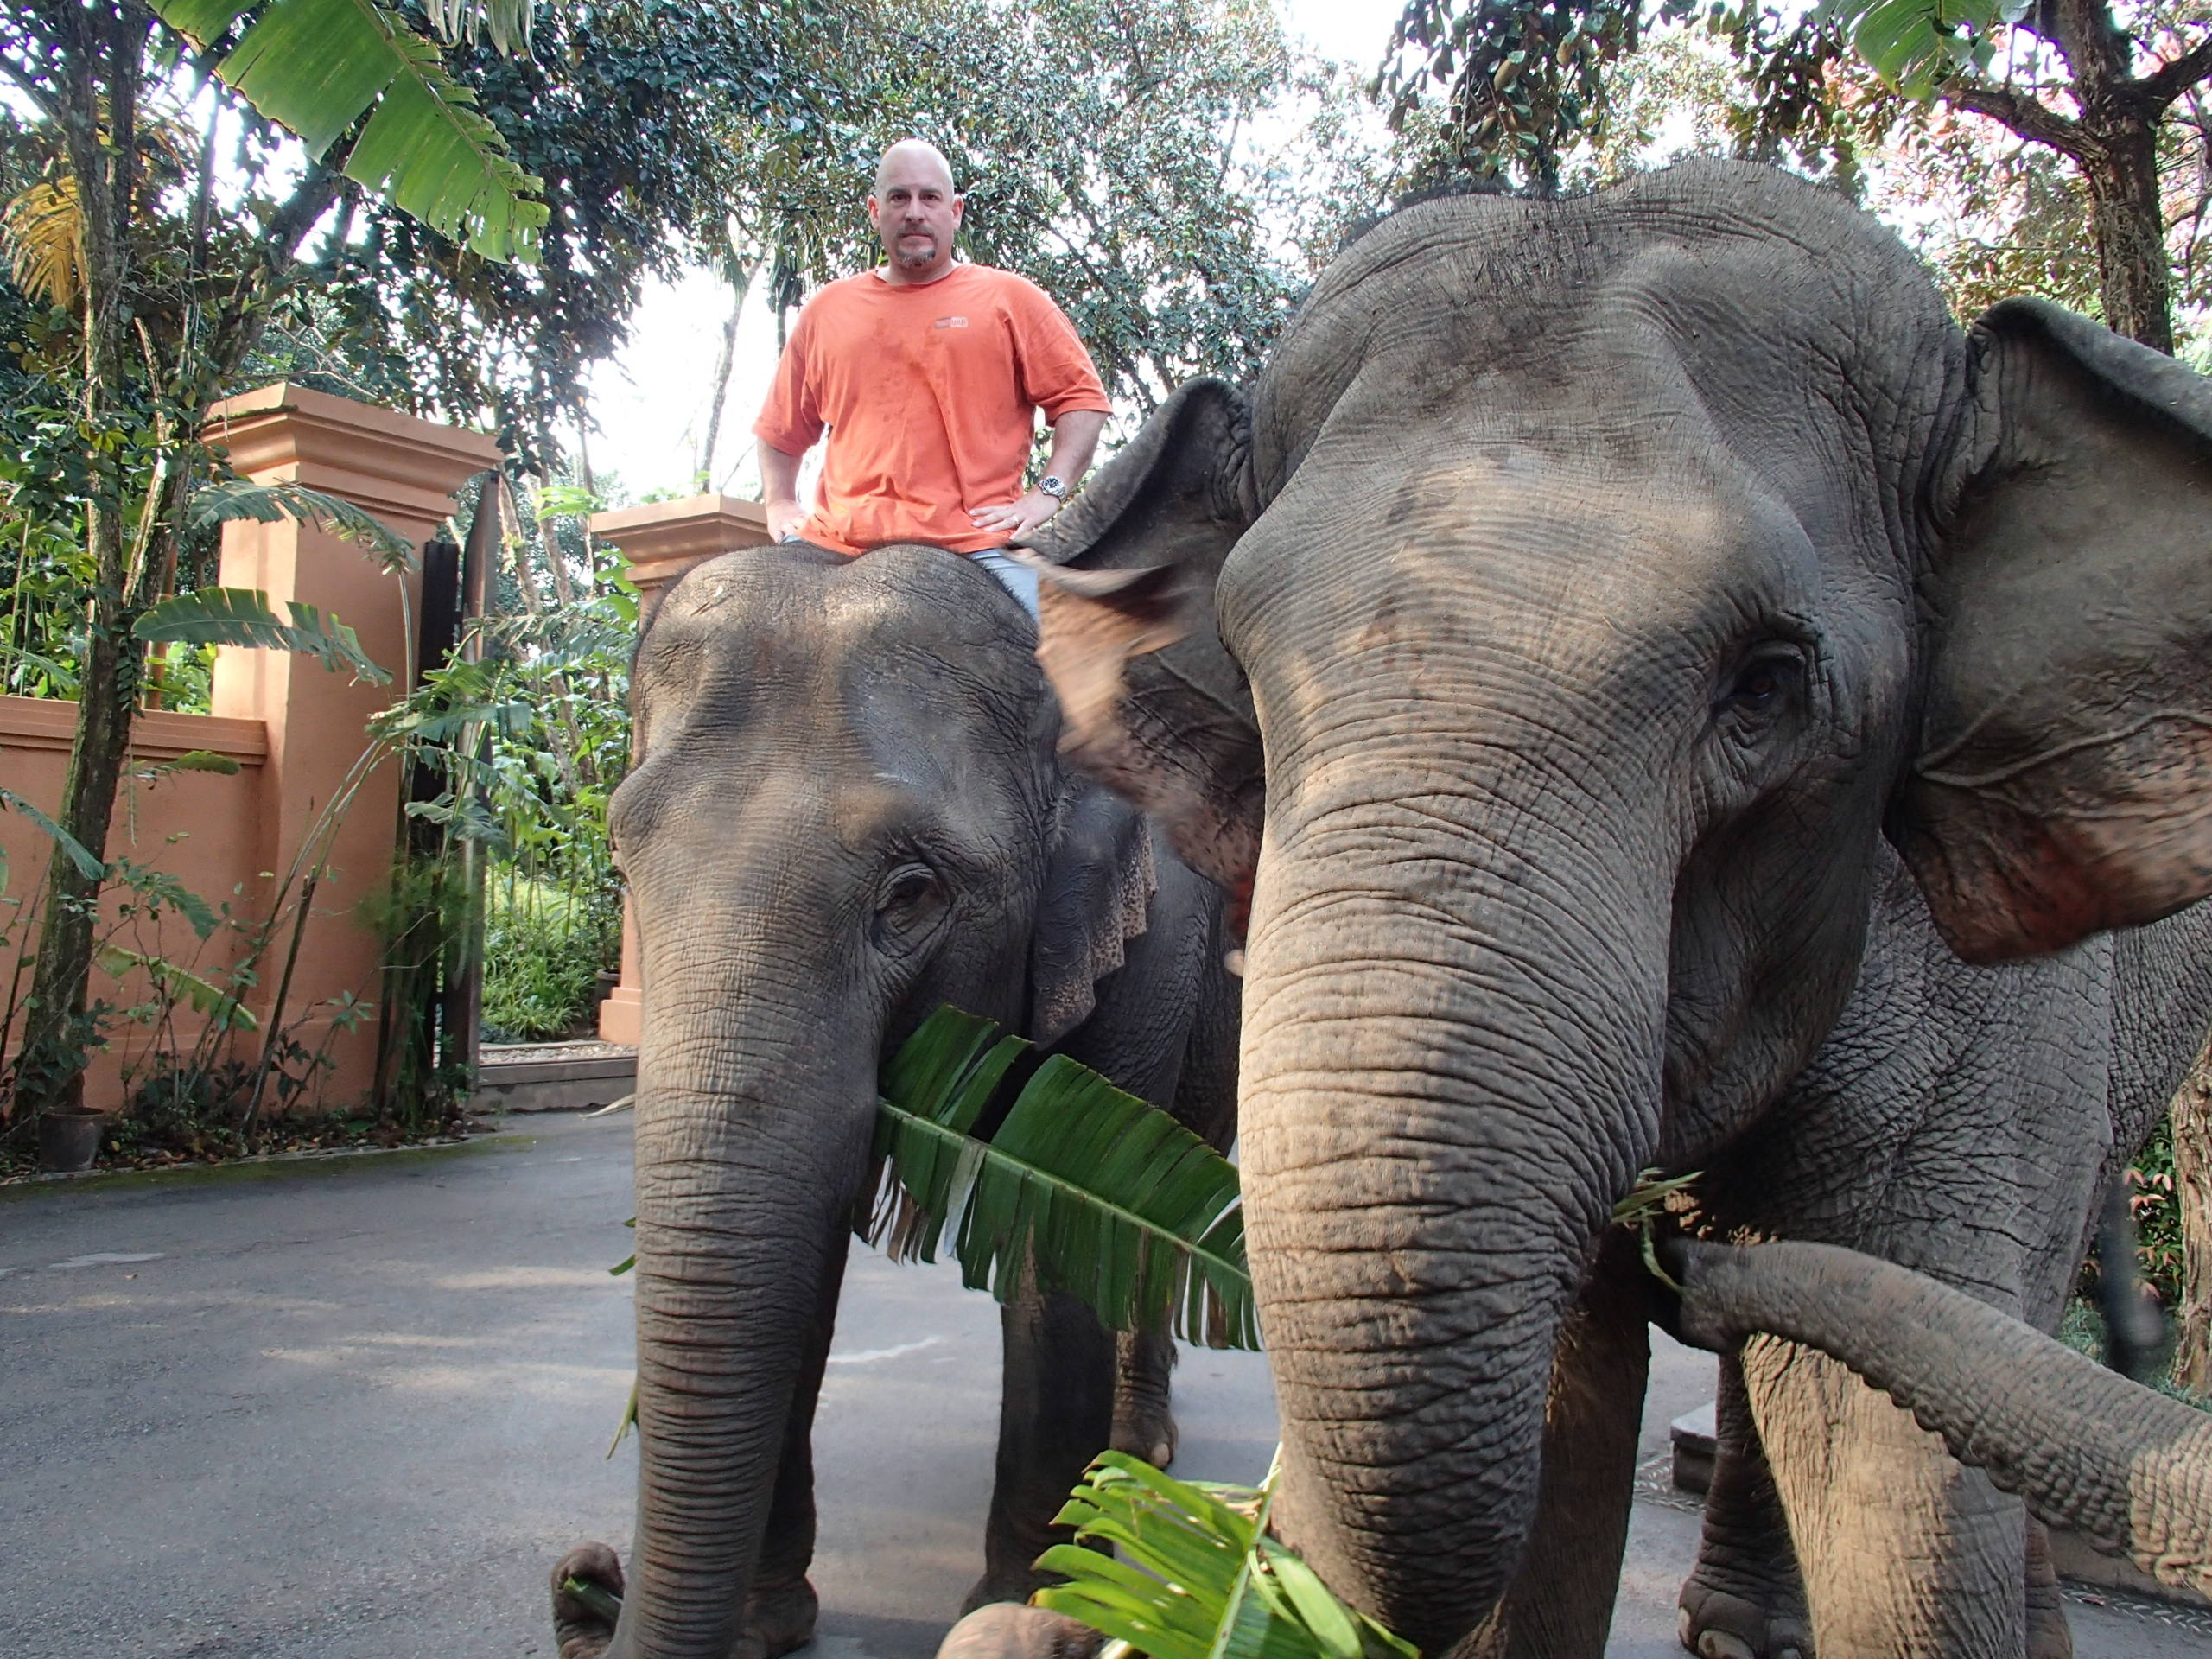 Michael & elephants at Anantara Golden Triangle